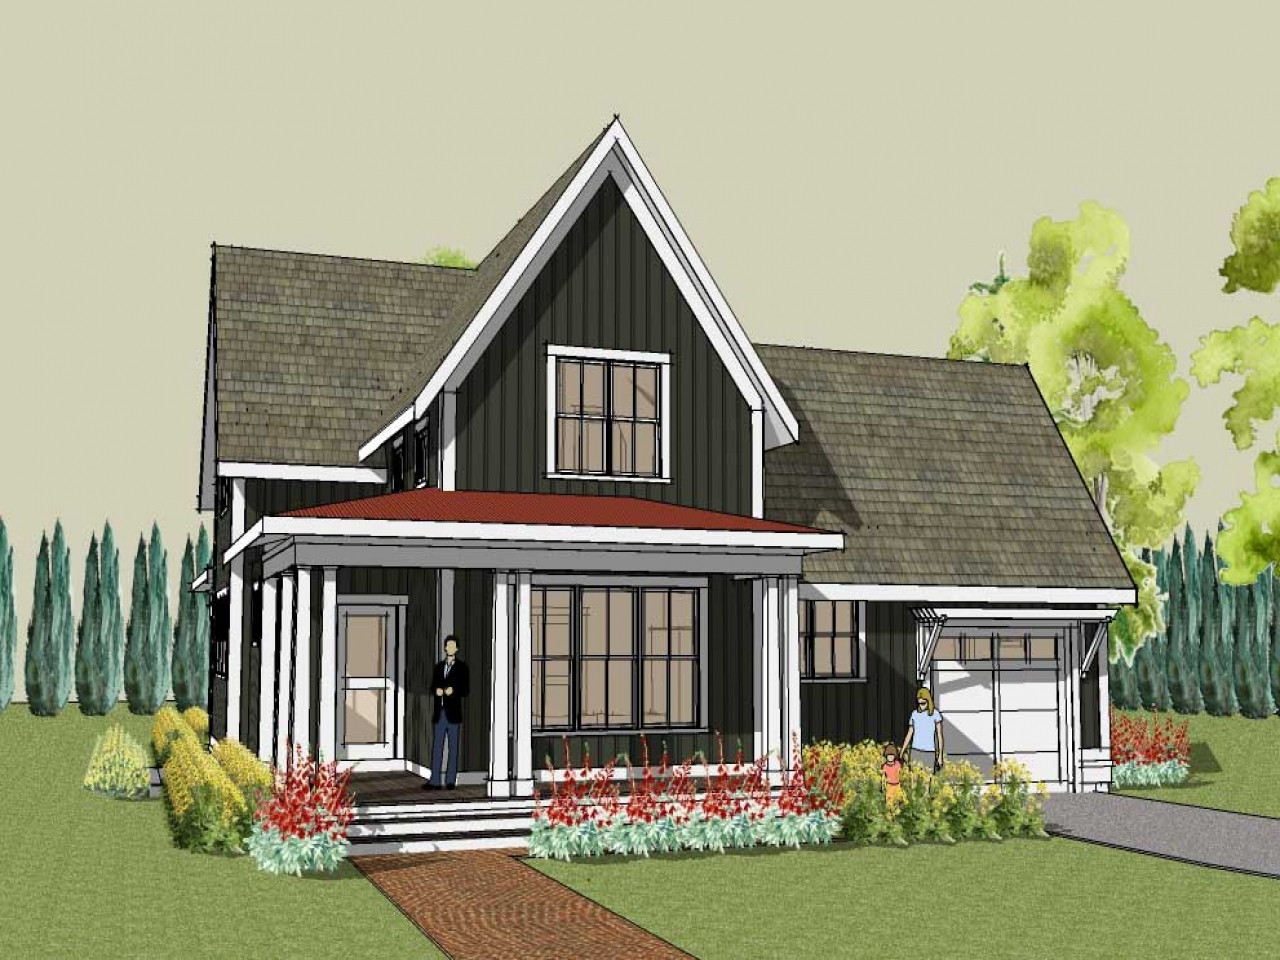 Farmhouse design house plans farmhouse building plans for Farm house construction